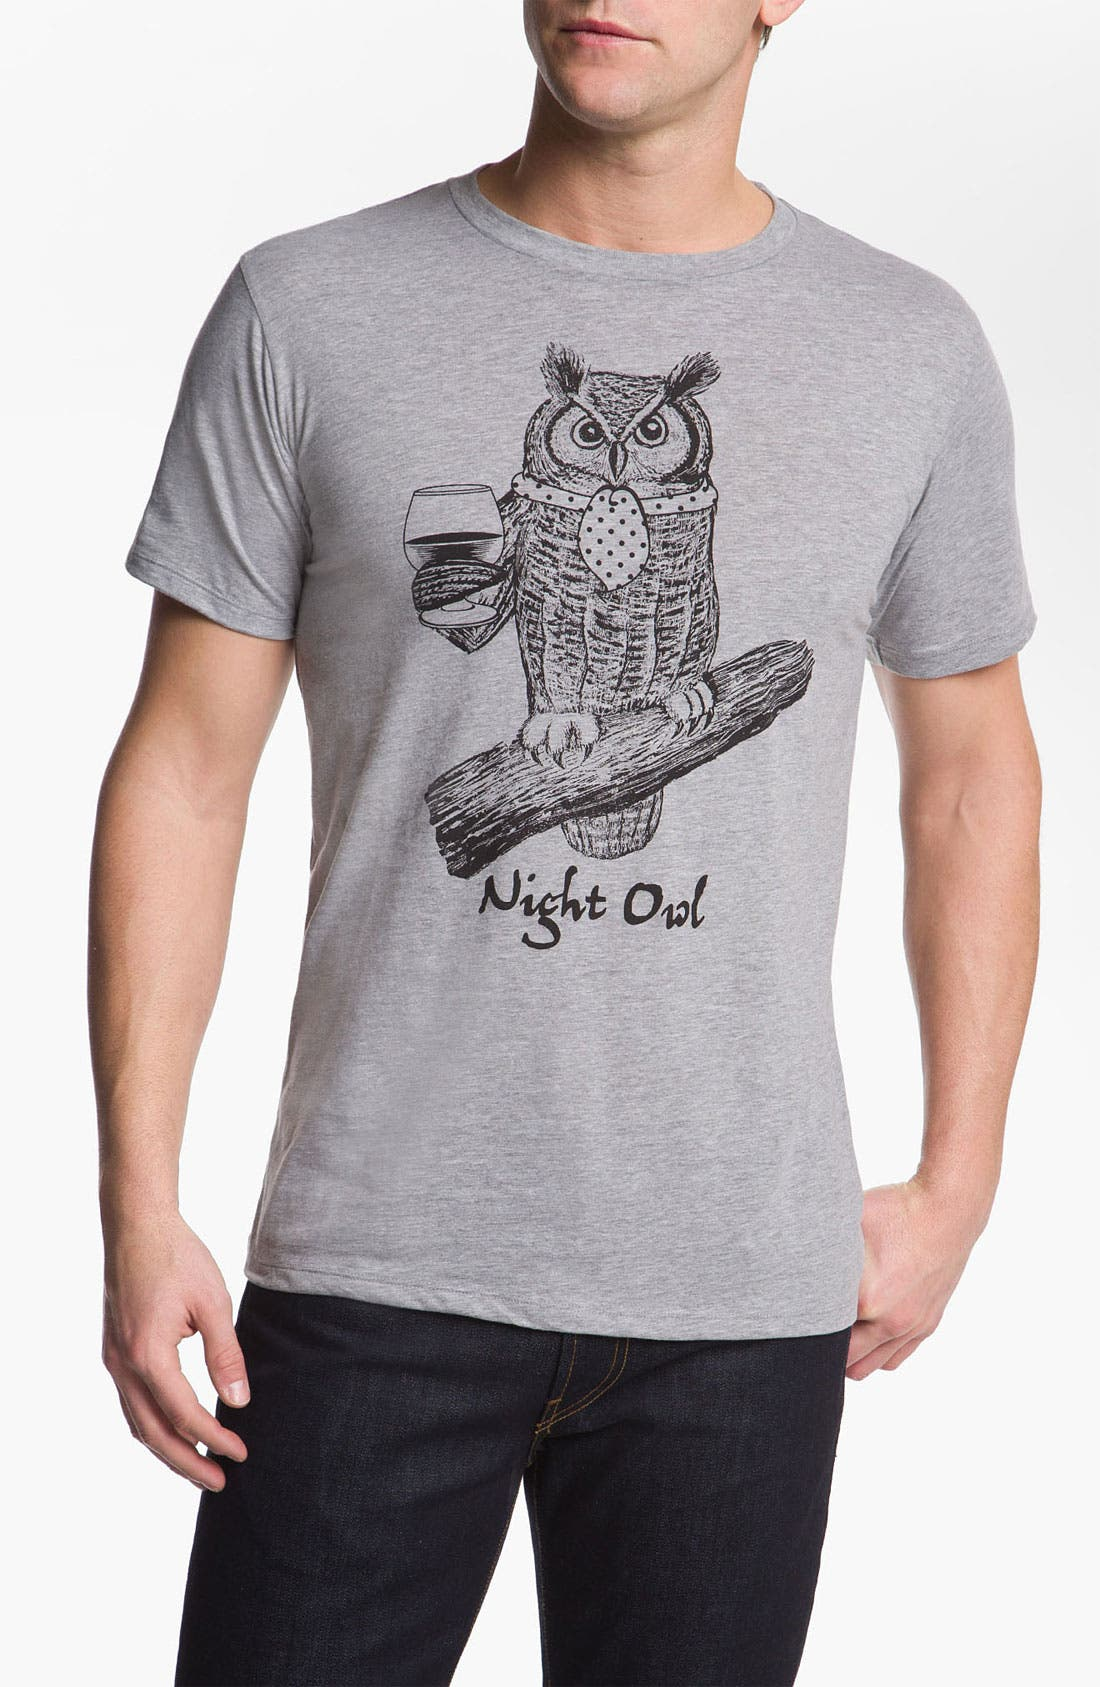 Main Image - Headline Shirts 'Night Owl' Graphic T-Shirt